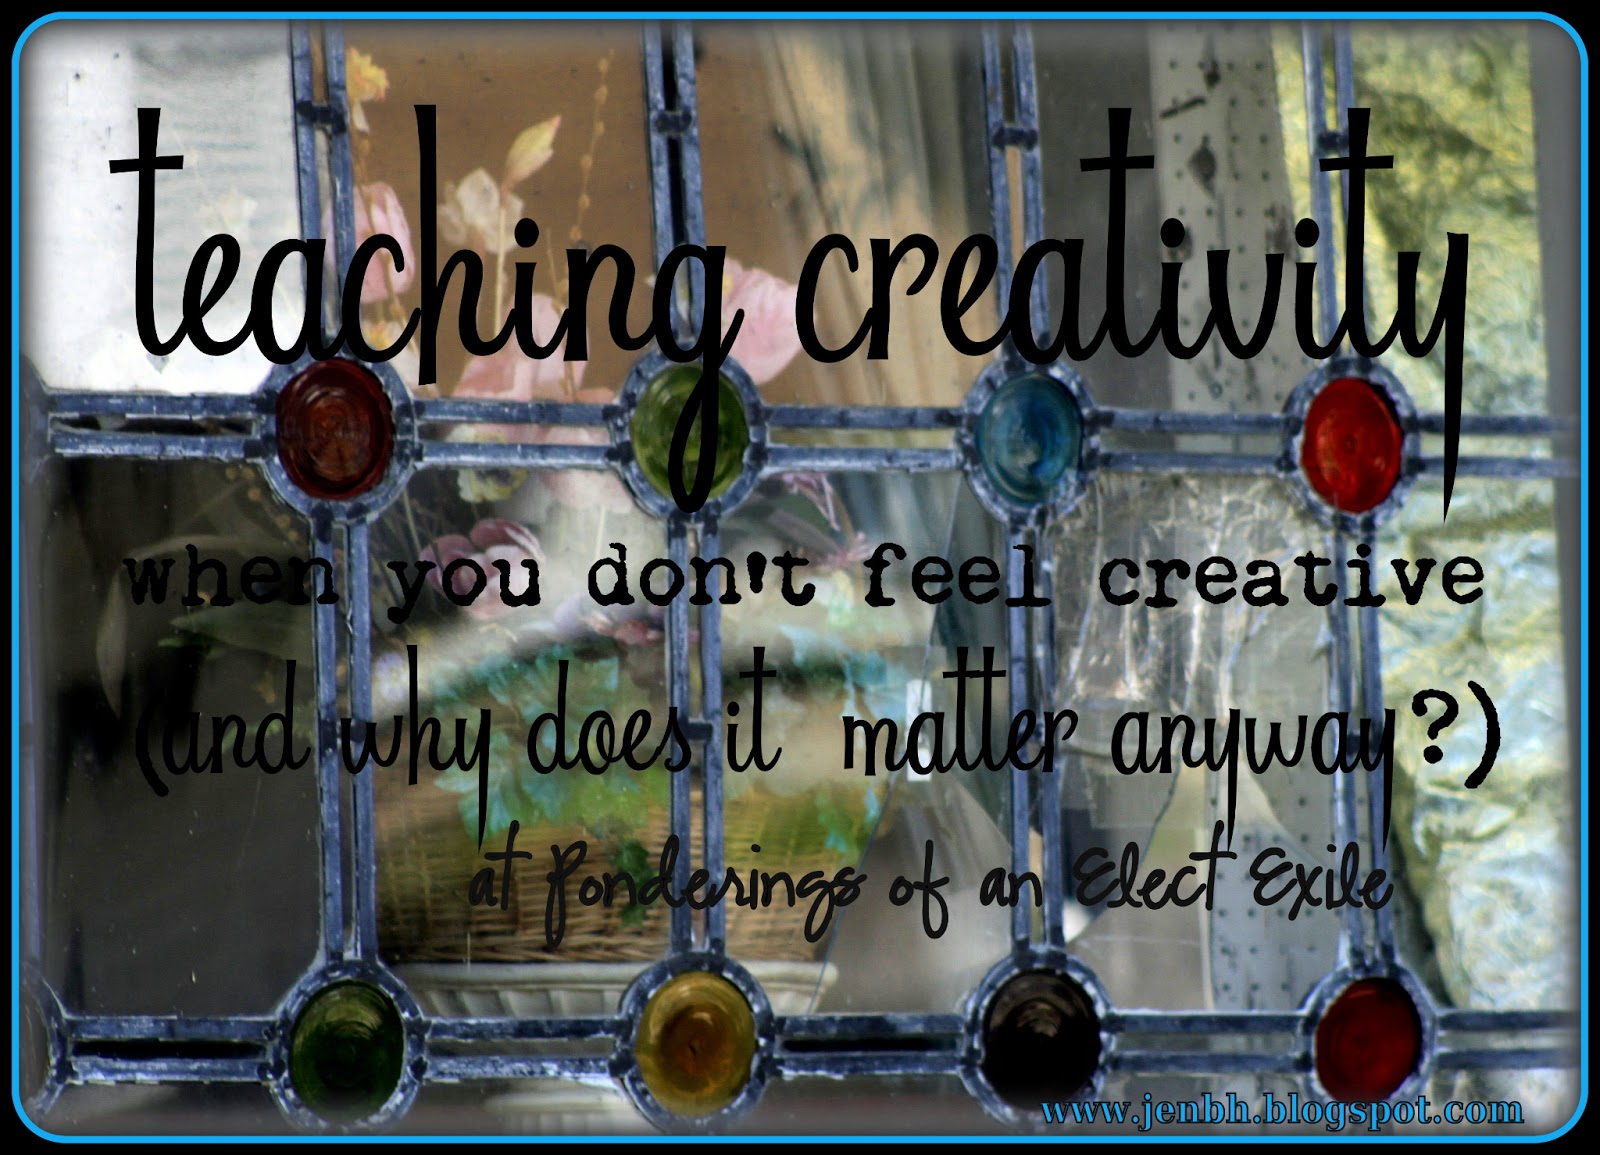 ponderings of an elect exile  teaching creativity when you